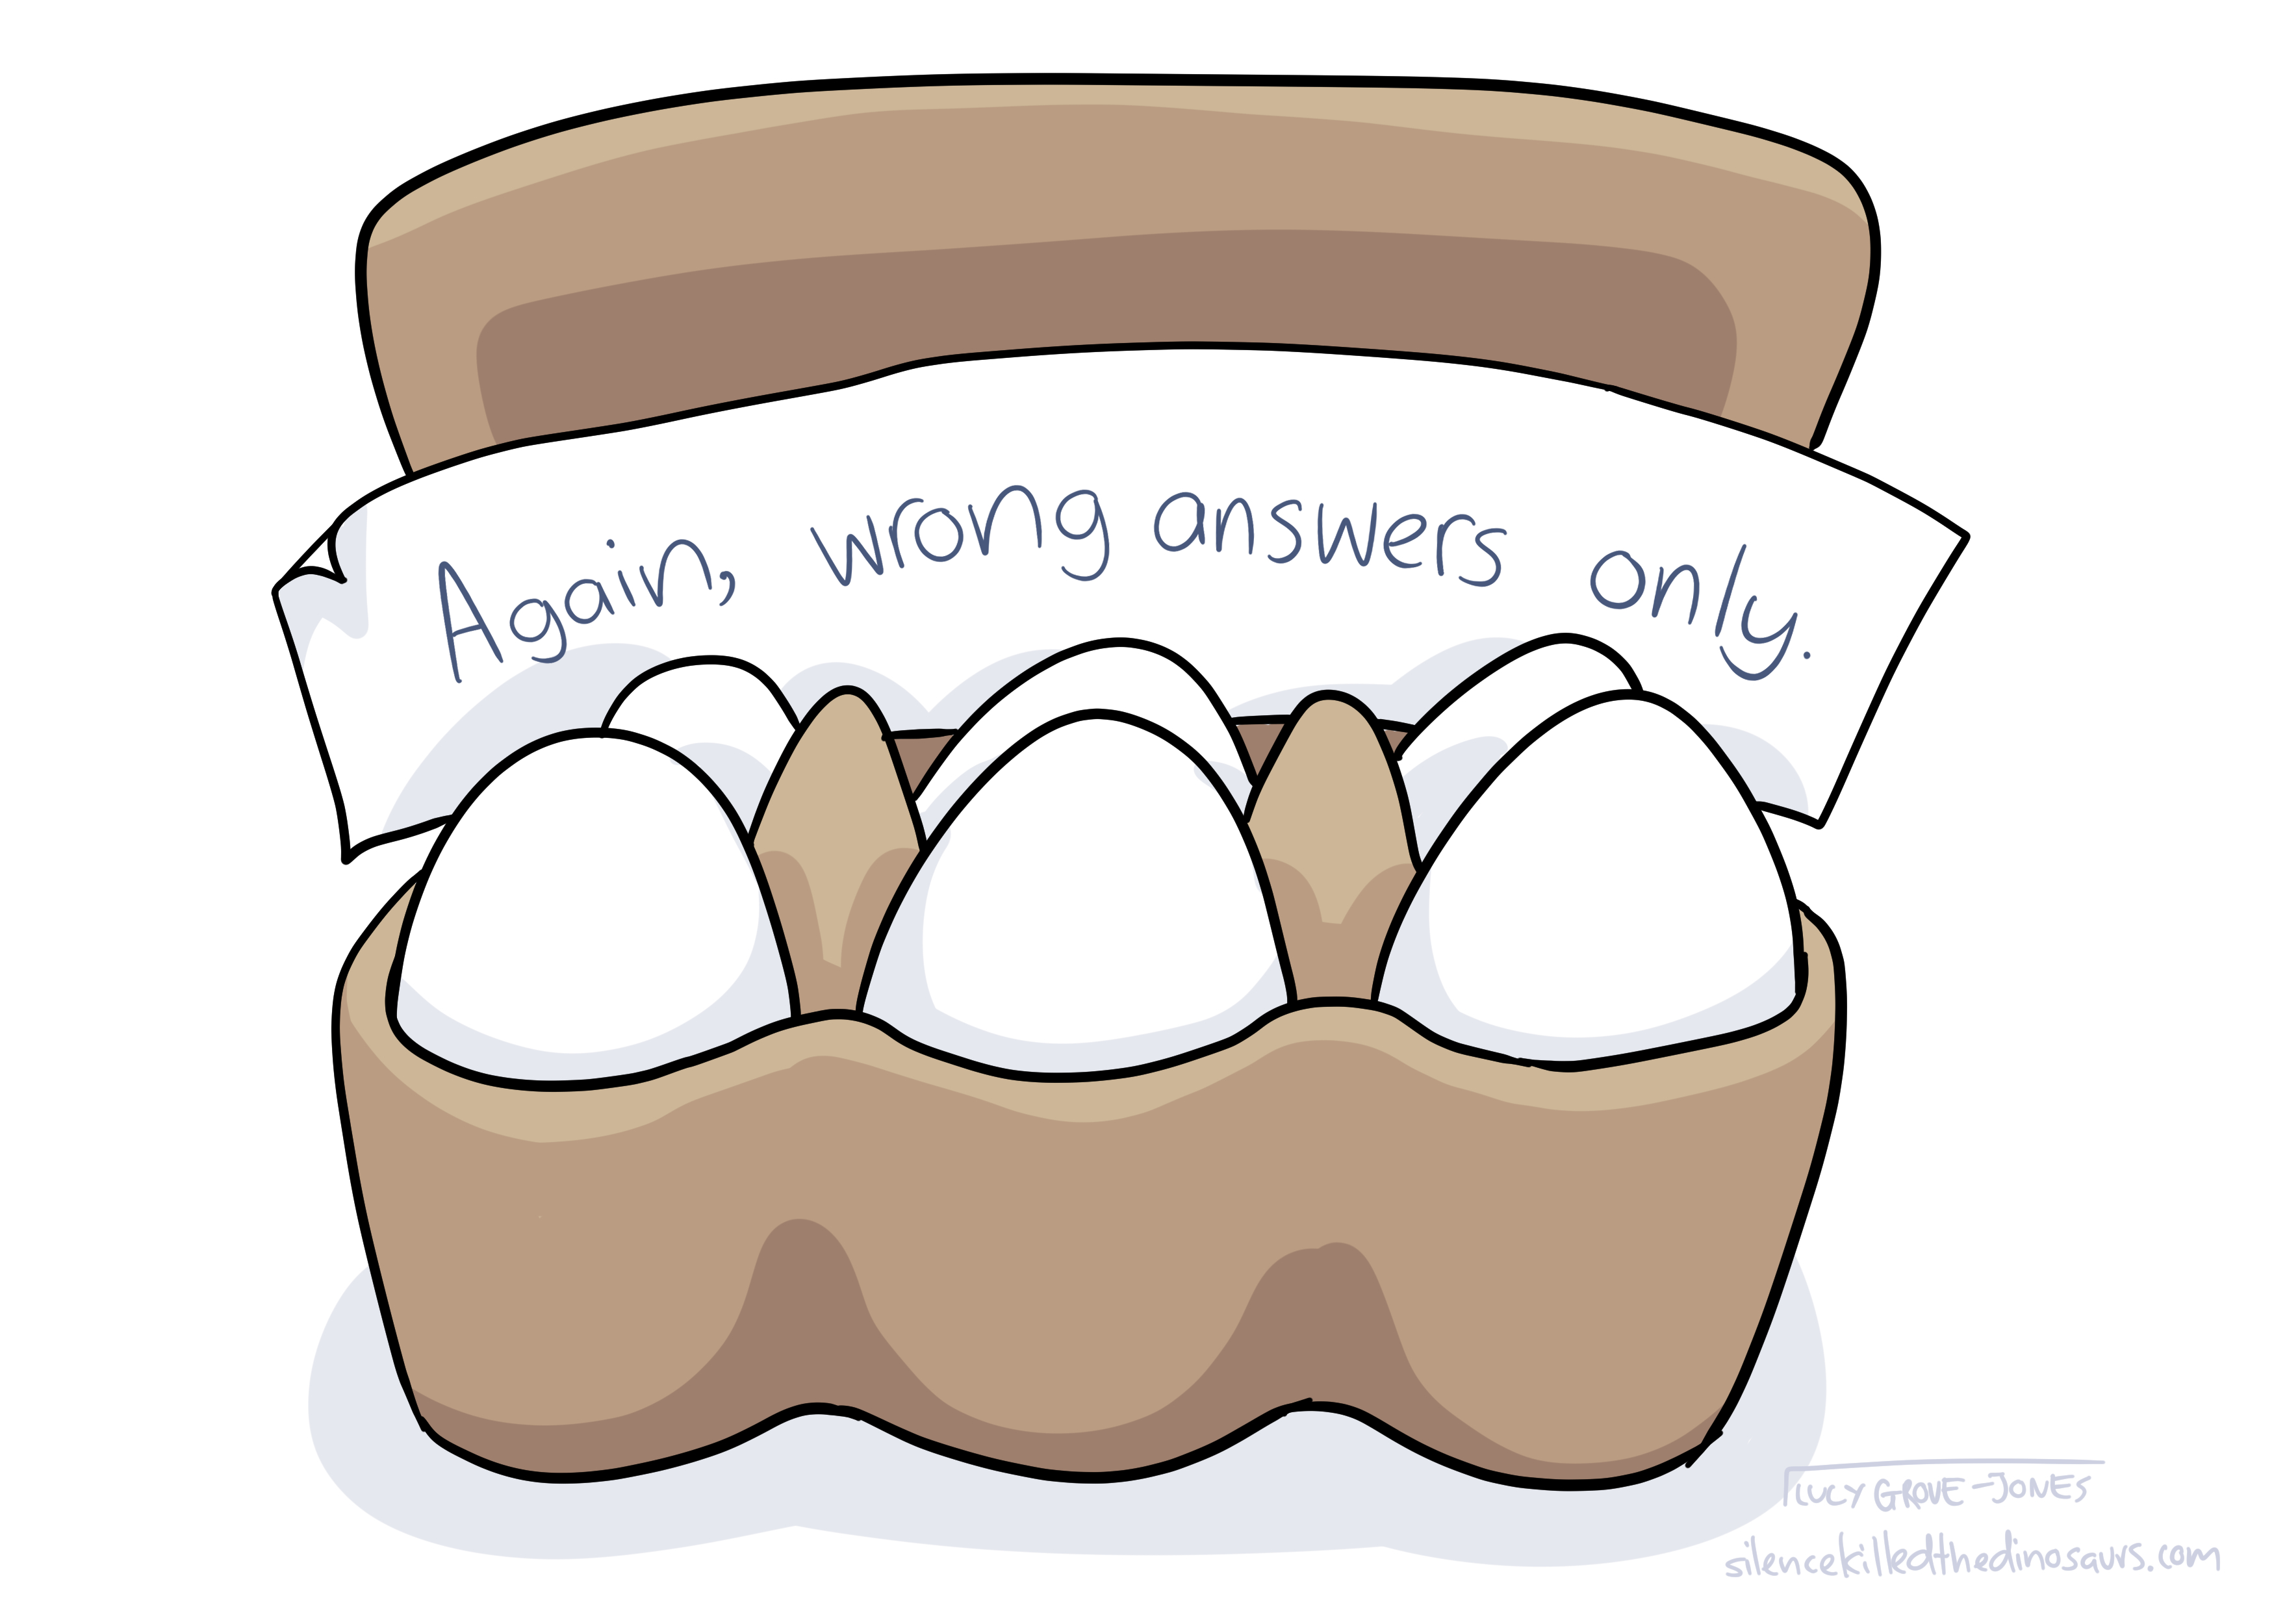 Egg cartoon containing a note which reads: 'Again, wrong answers only.'